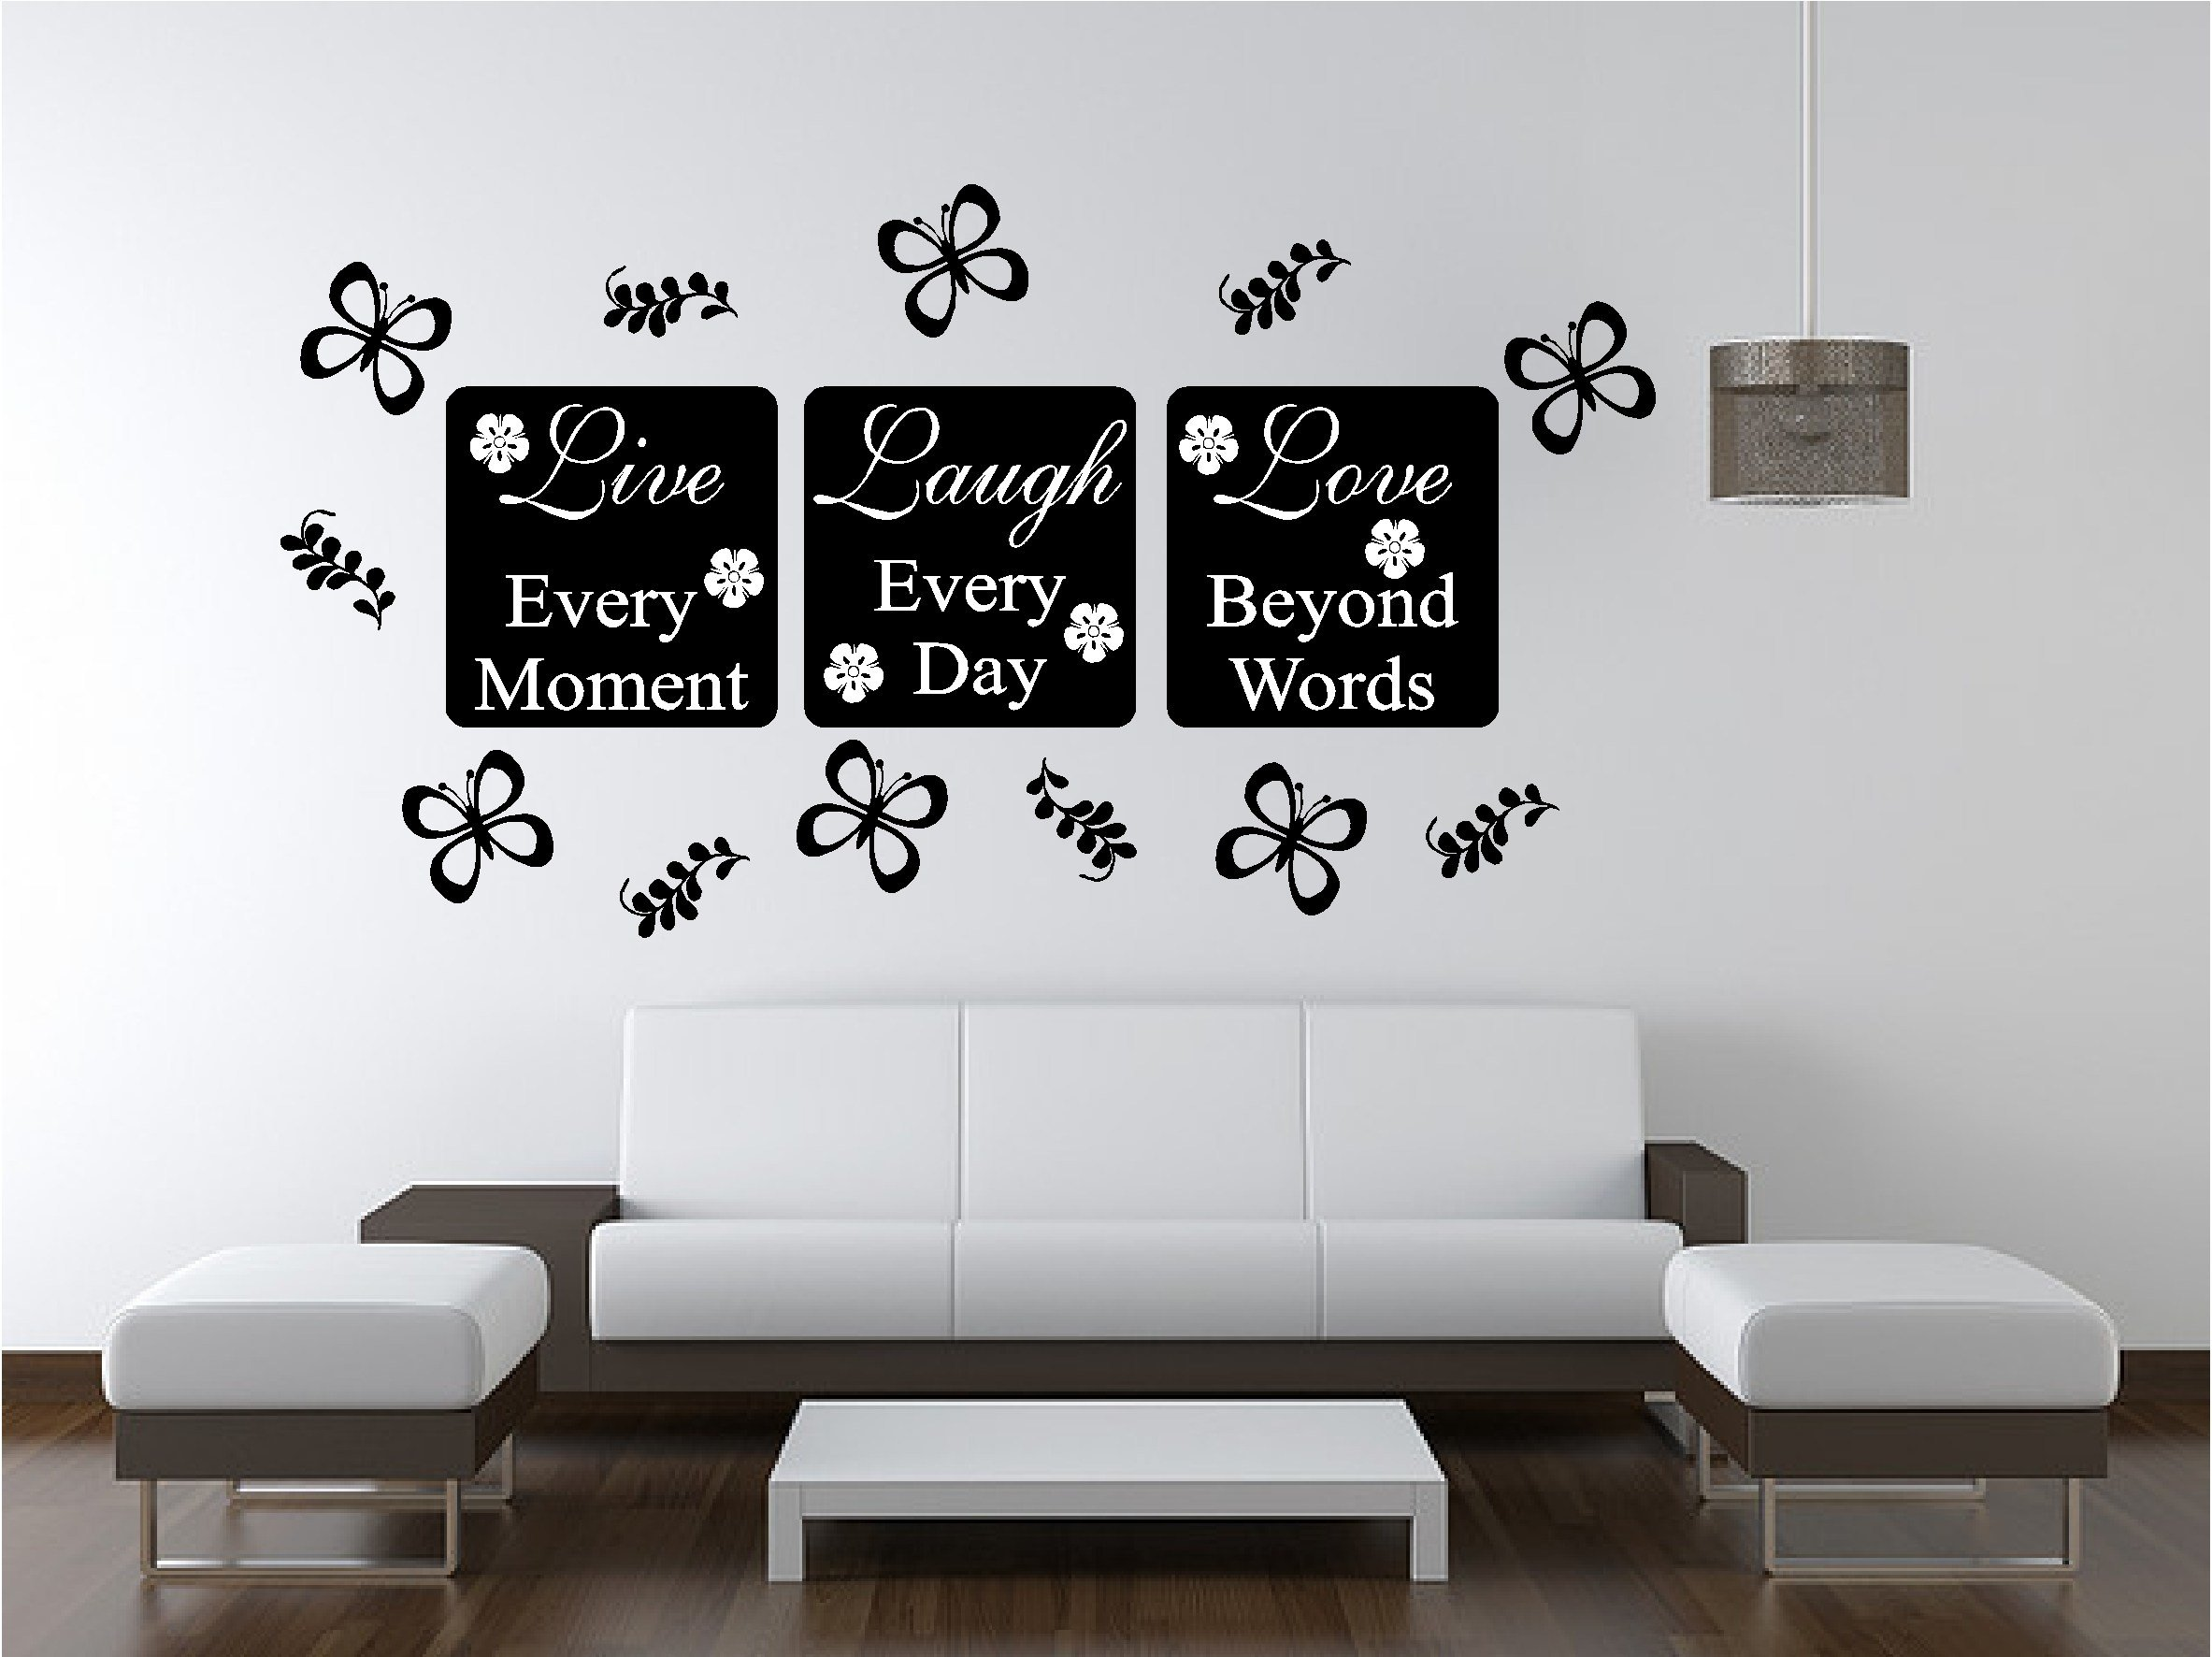 Best Live Love Wall Art Sticker Quote Bedroom Lounge Kitchen Ebay With Pictures